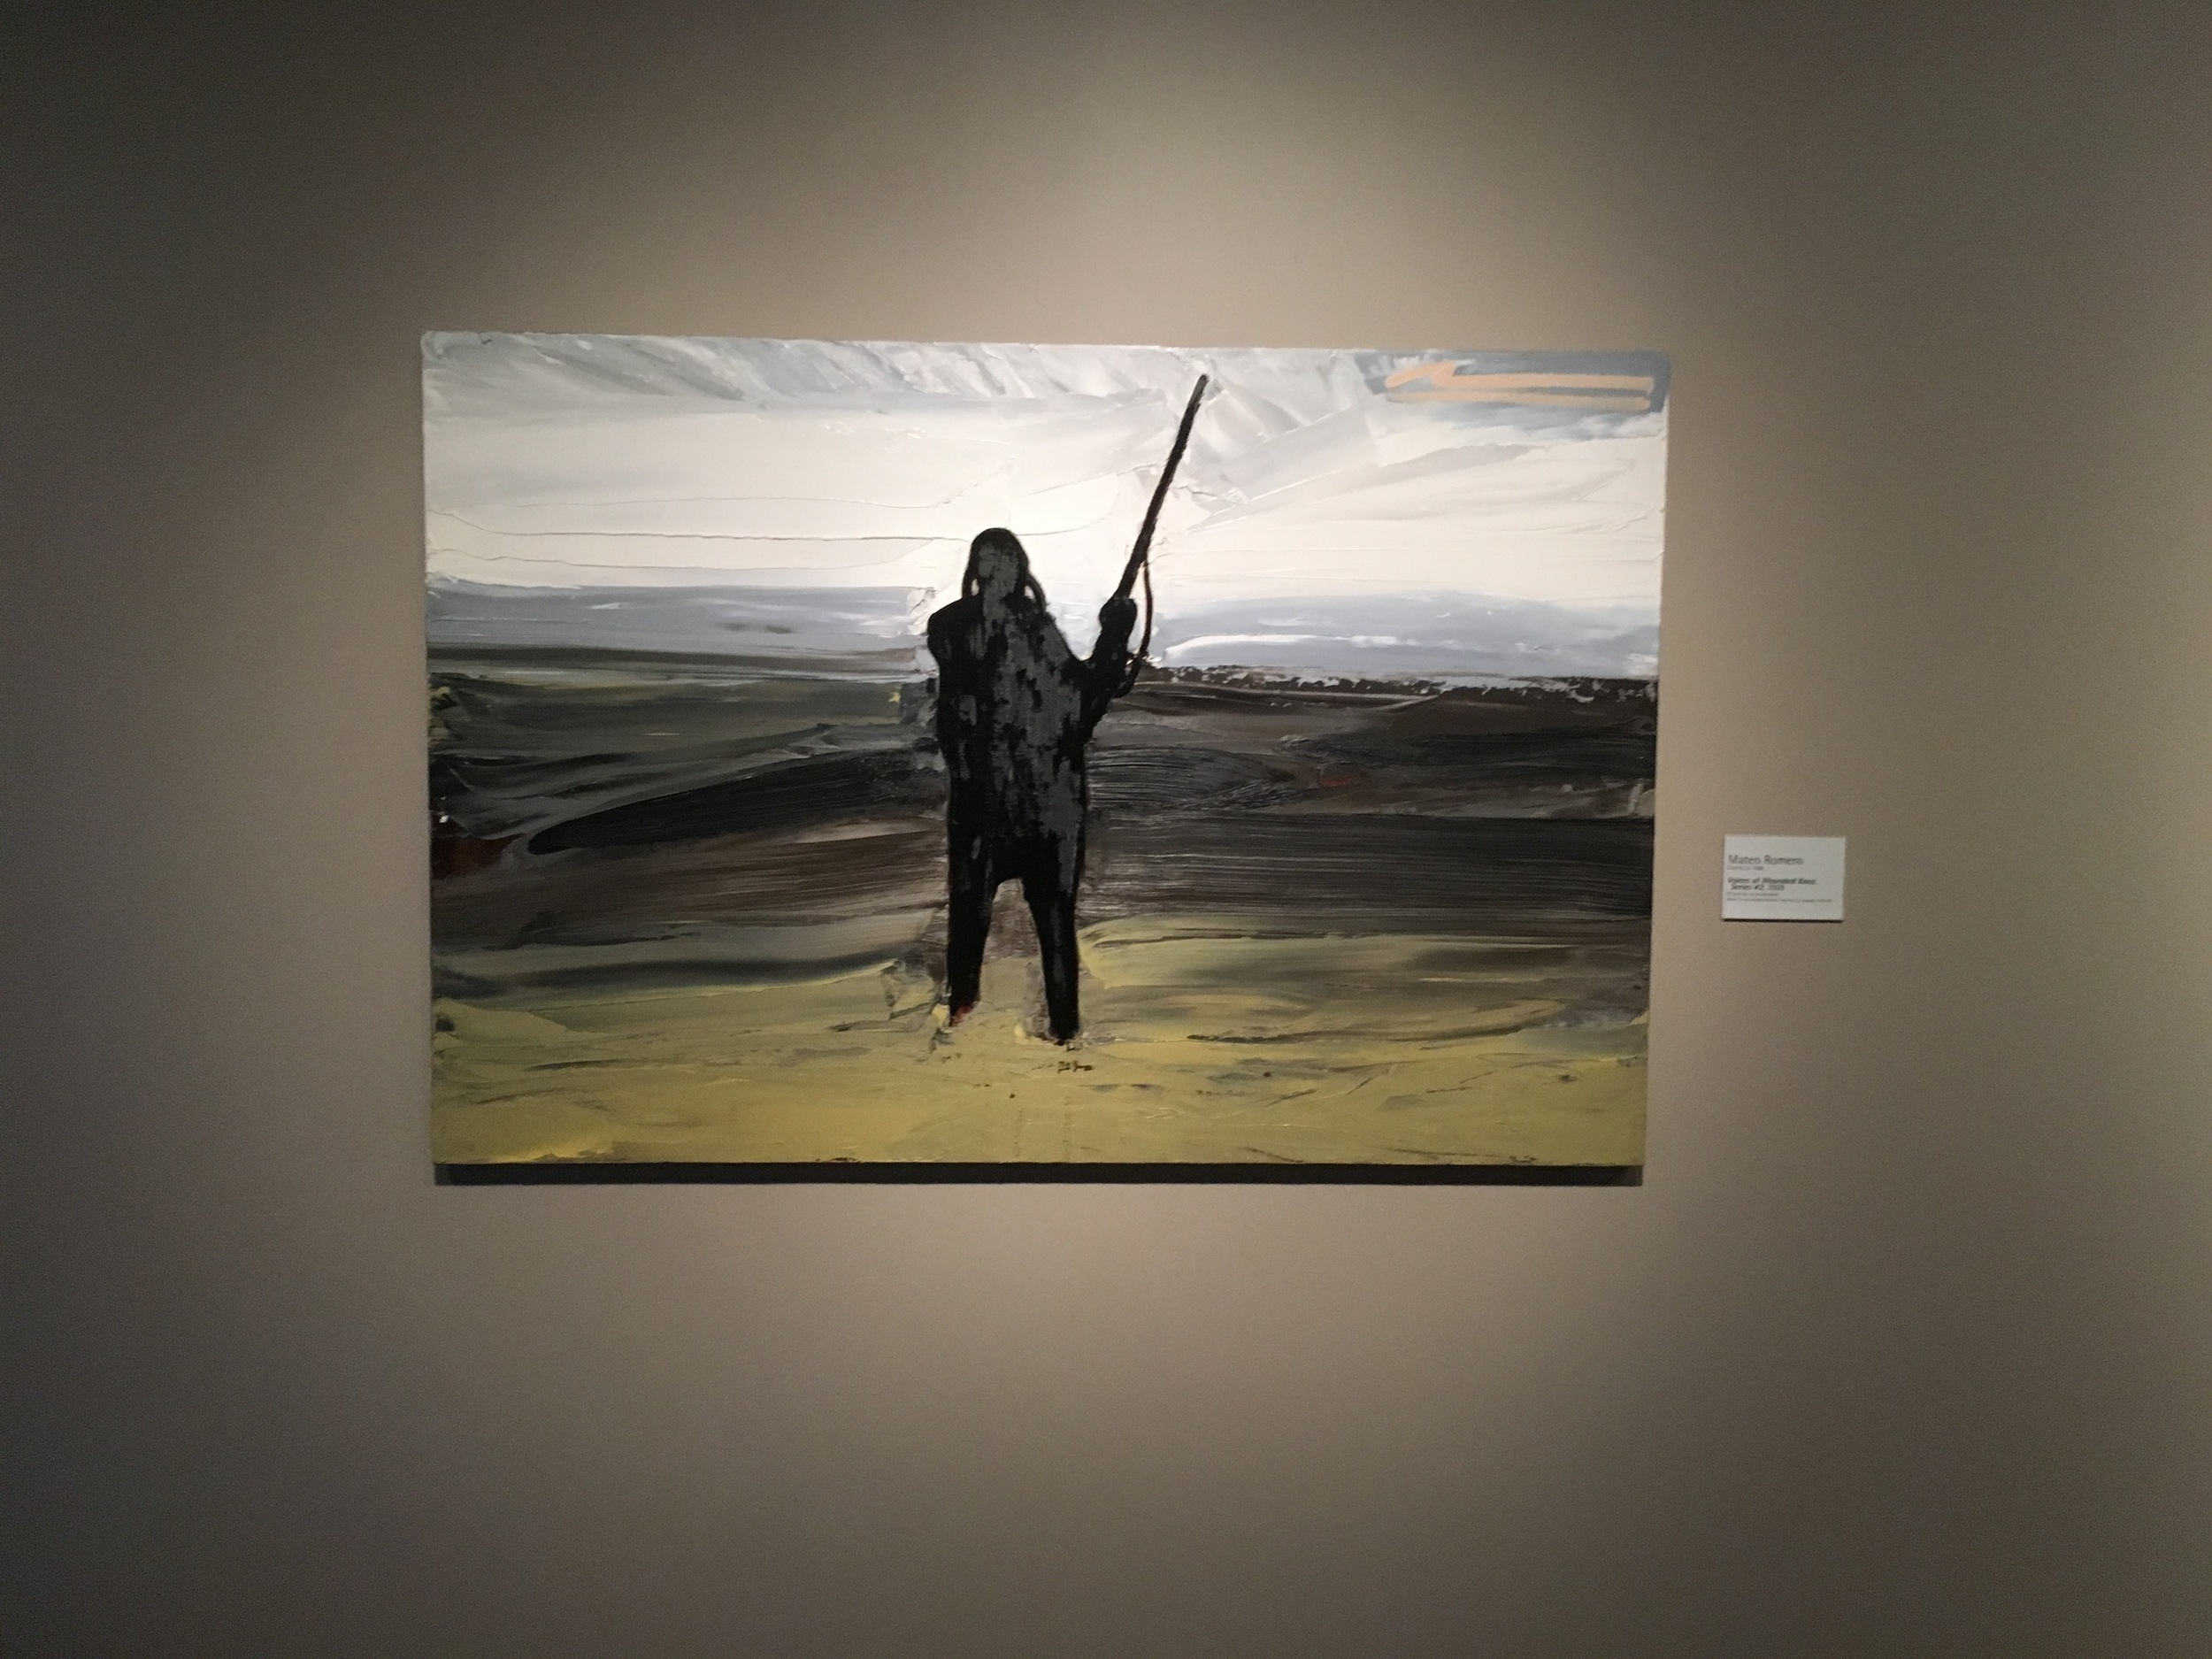 Voices at Wounded Knee, Series #2- Mateo Romero, 2008